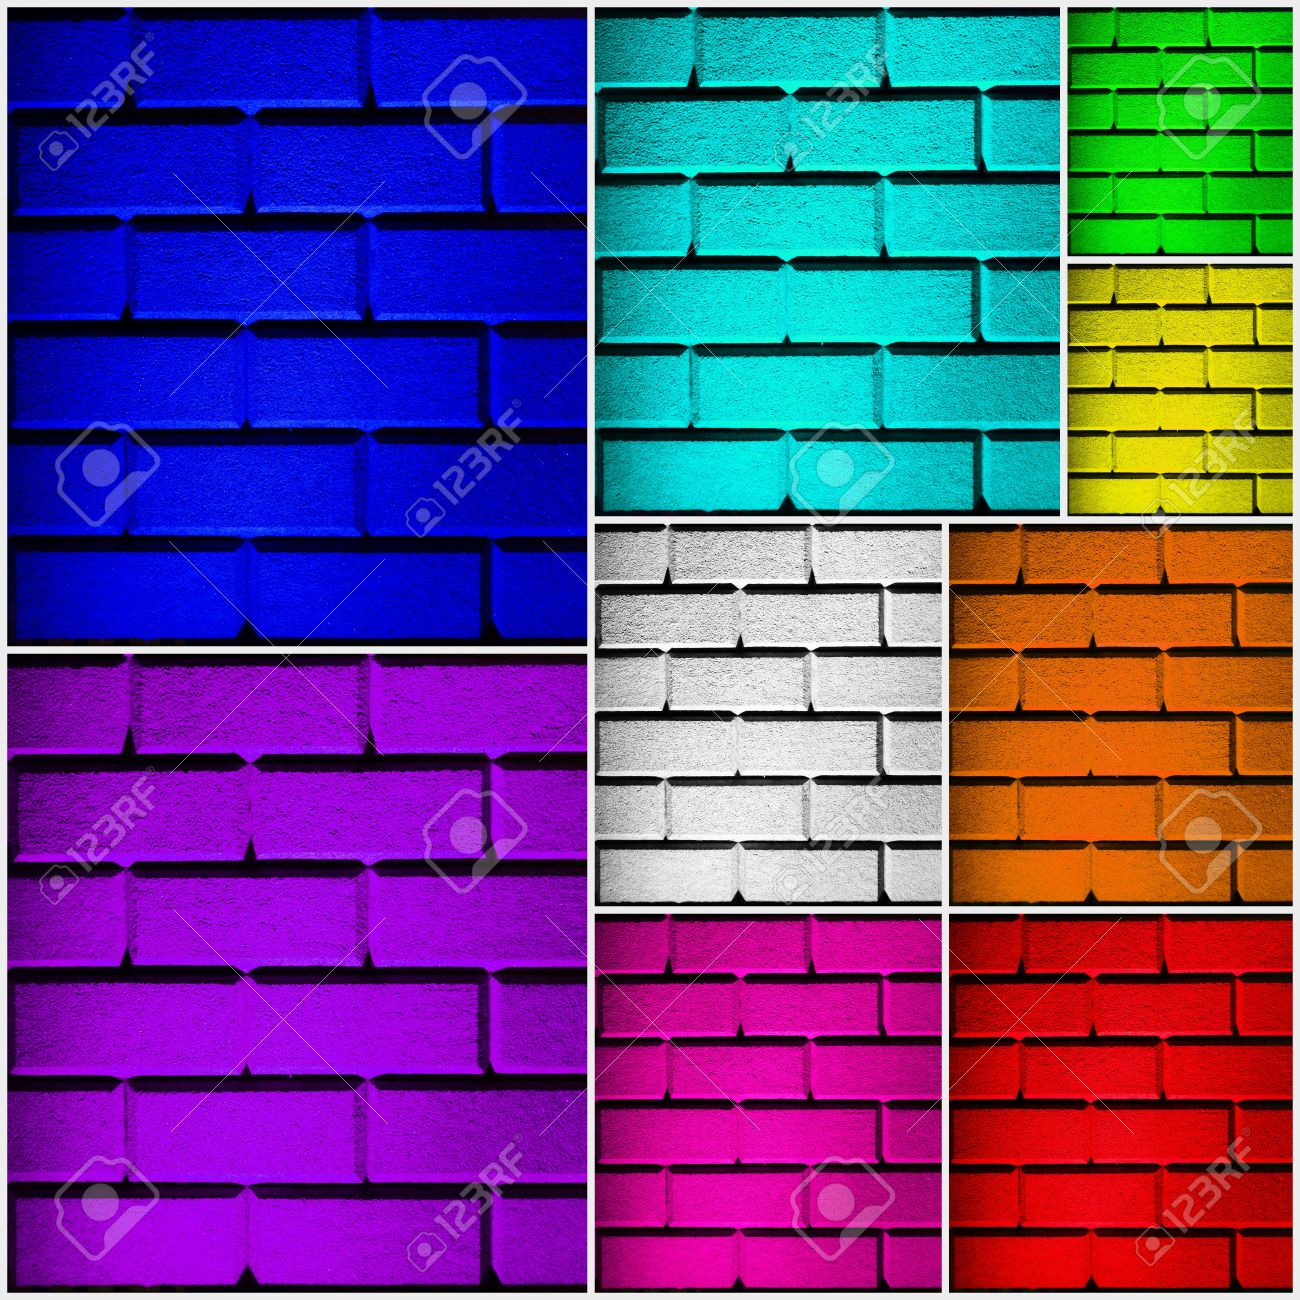 Bilder Collage Wand Stock Photo